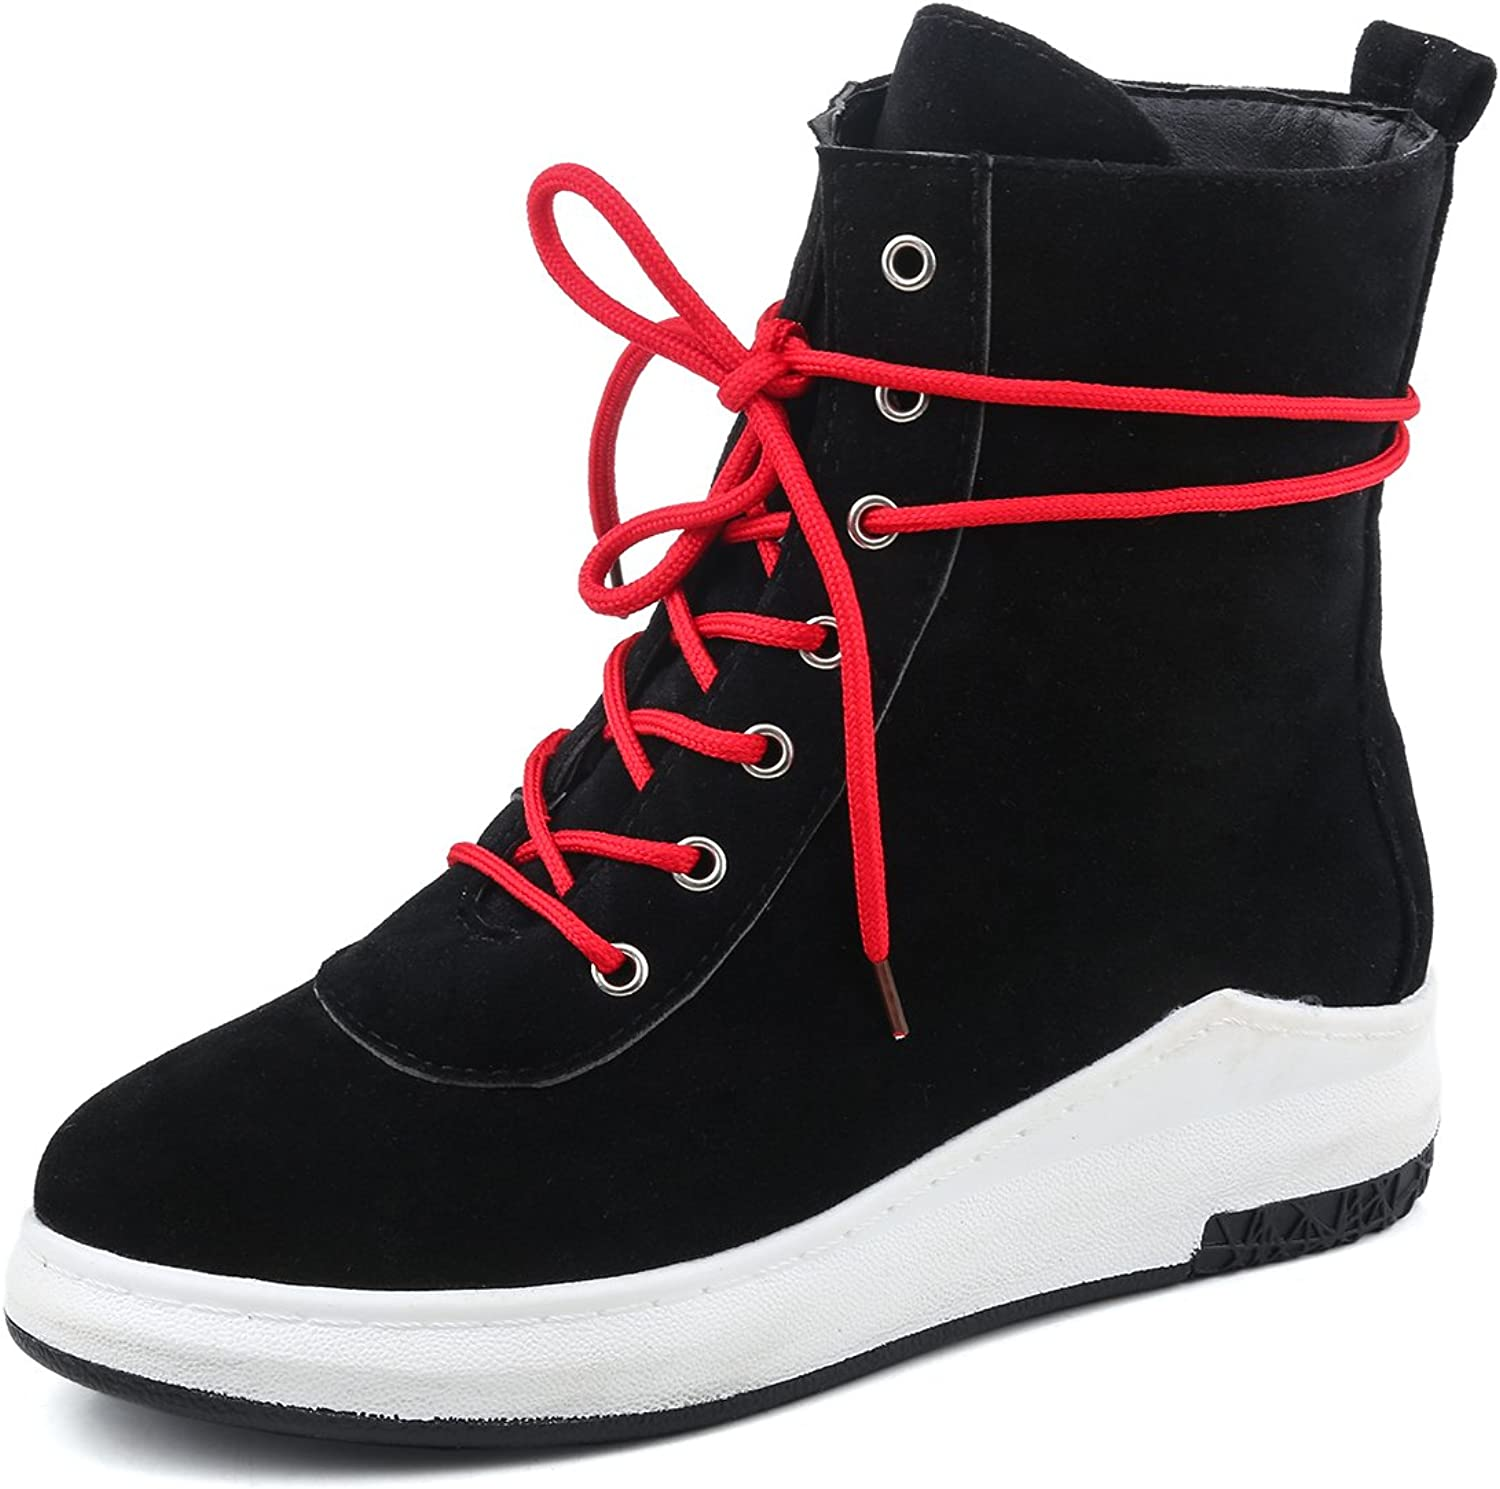 BalaMasa Womens Flatform Lace-Up Solid Round-Toe Black Suede Boots ABL09602 - 5.5 B(M) US